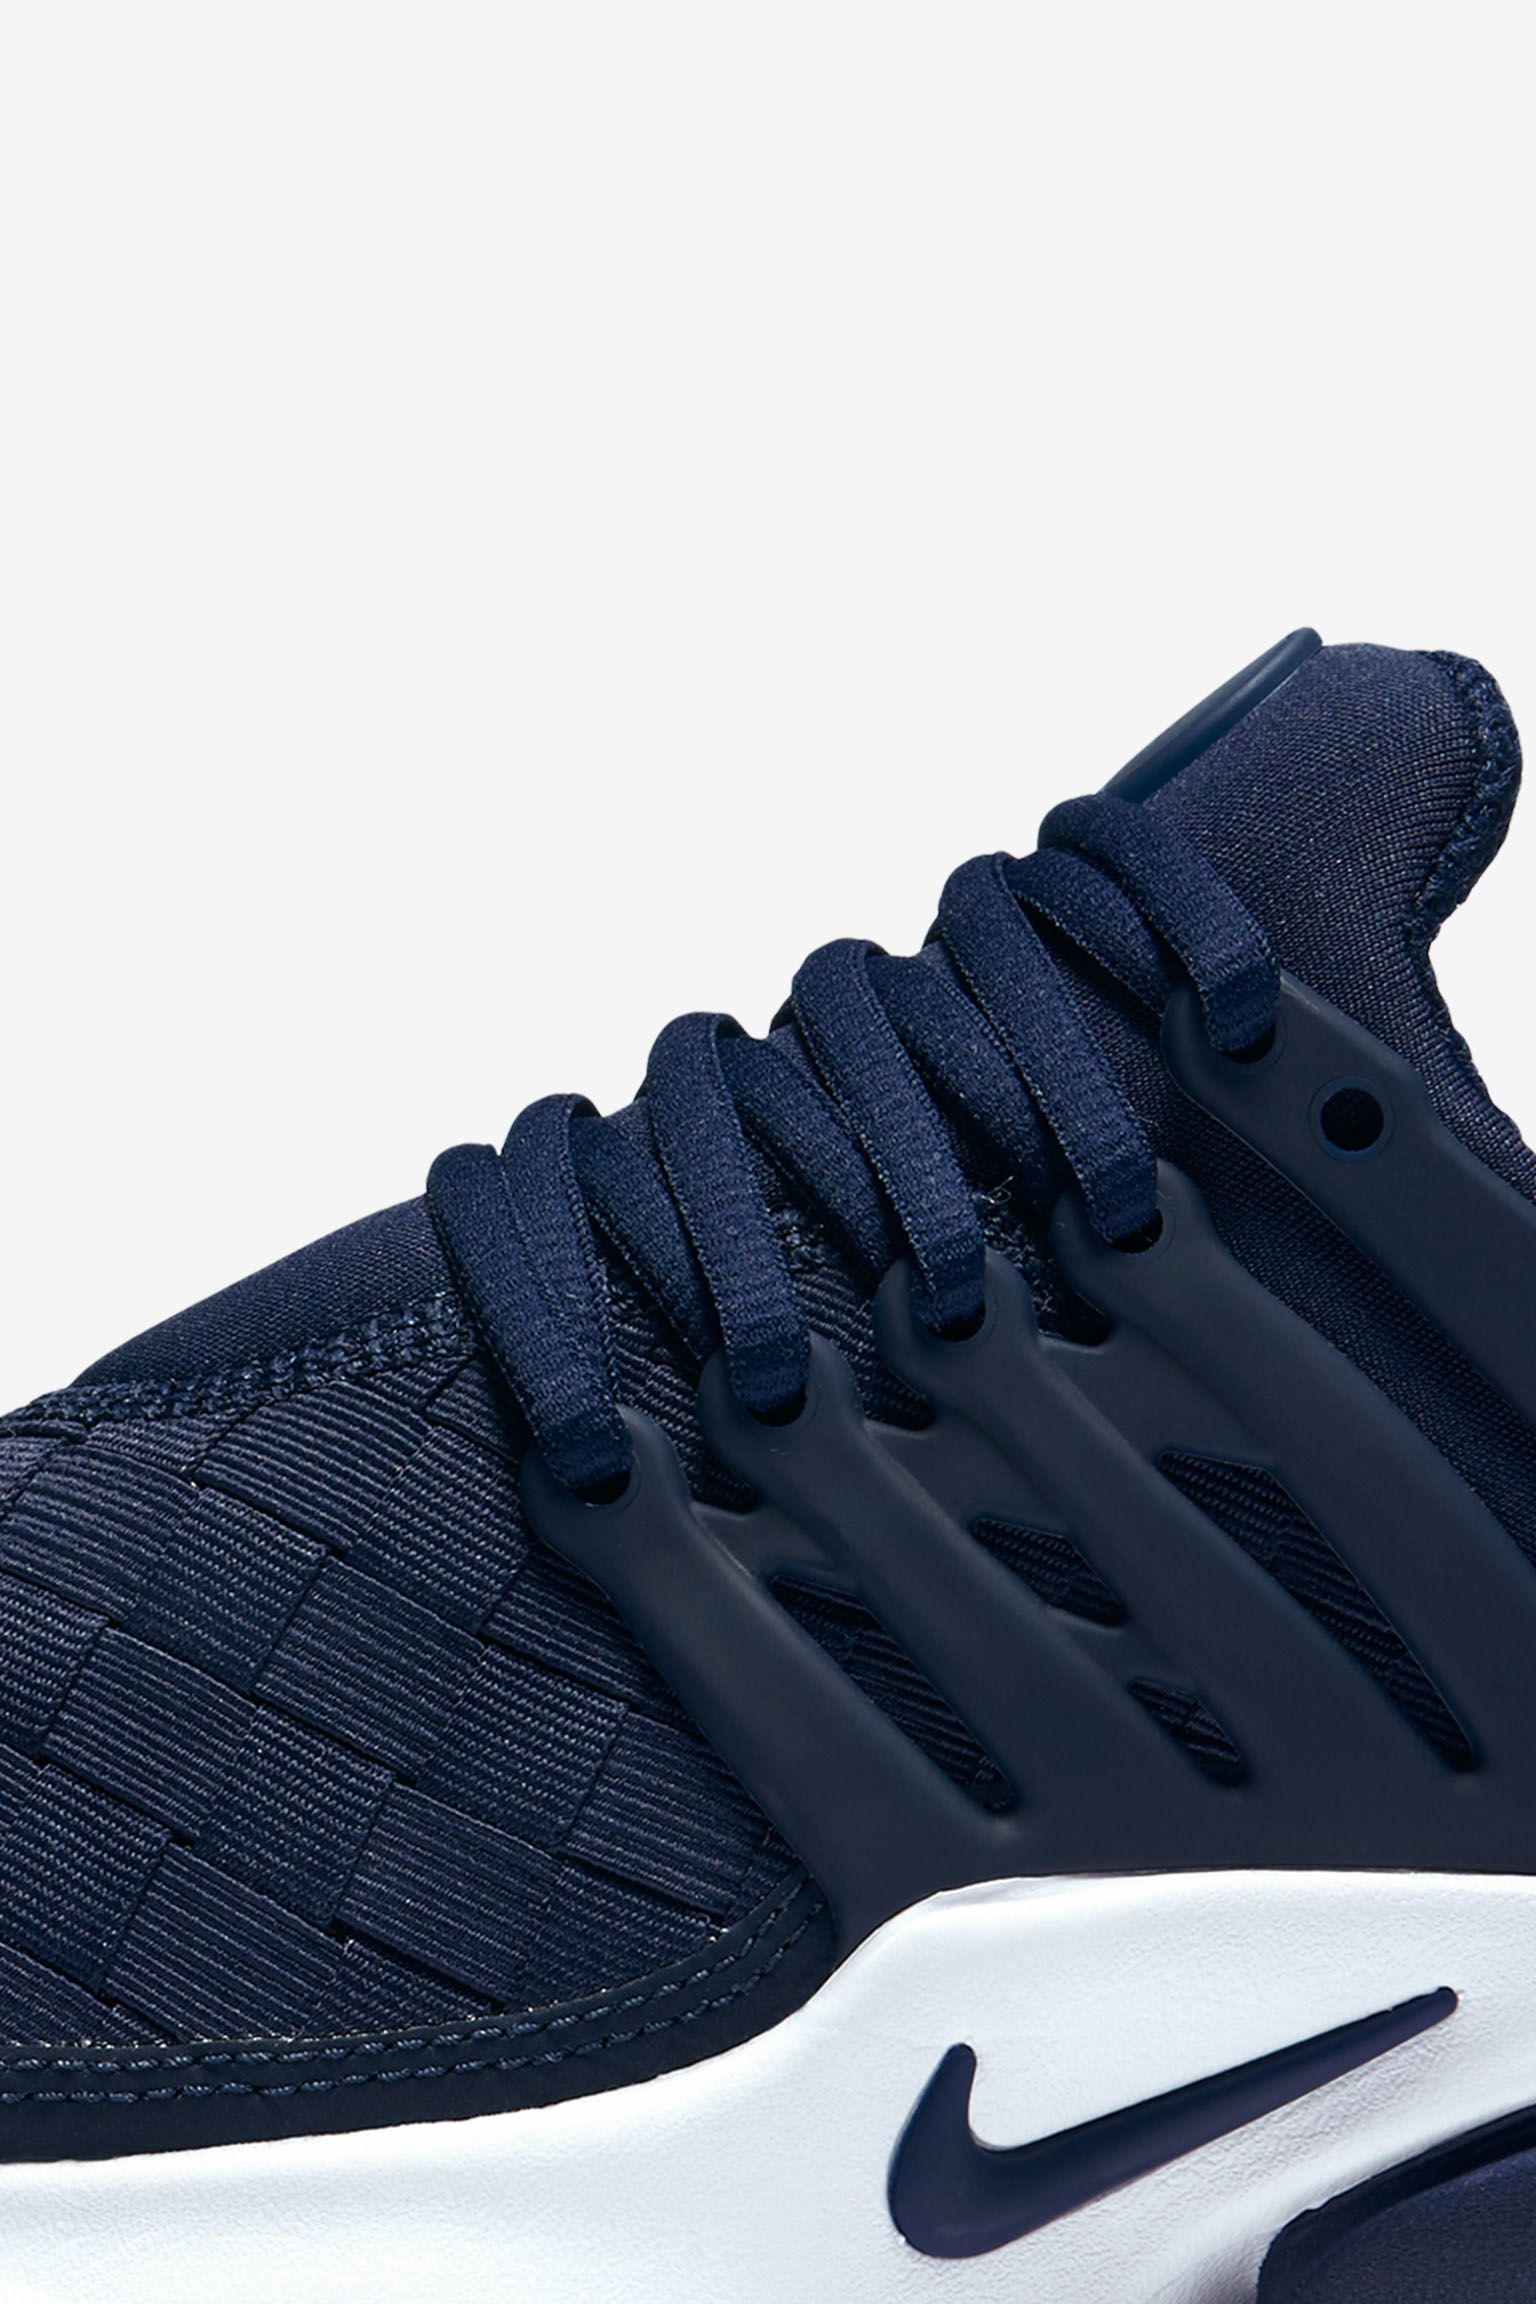 Nike Air Presto SE 'Midnight Navy' Release Date